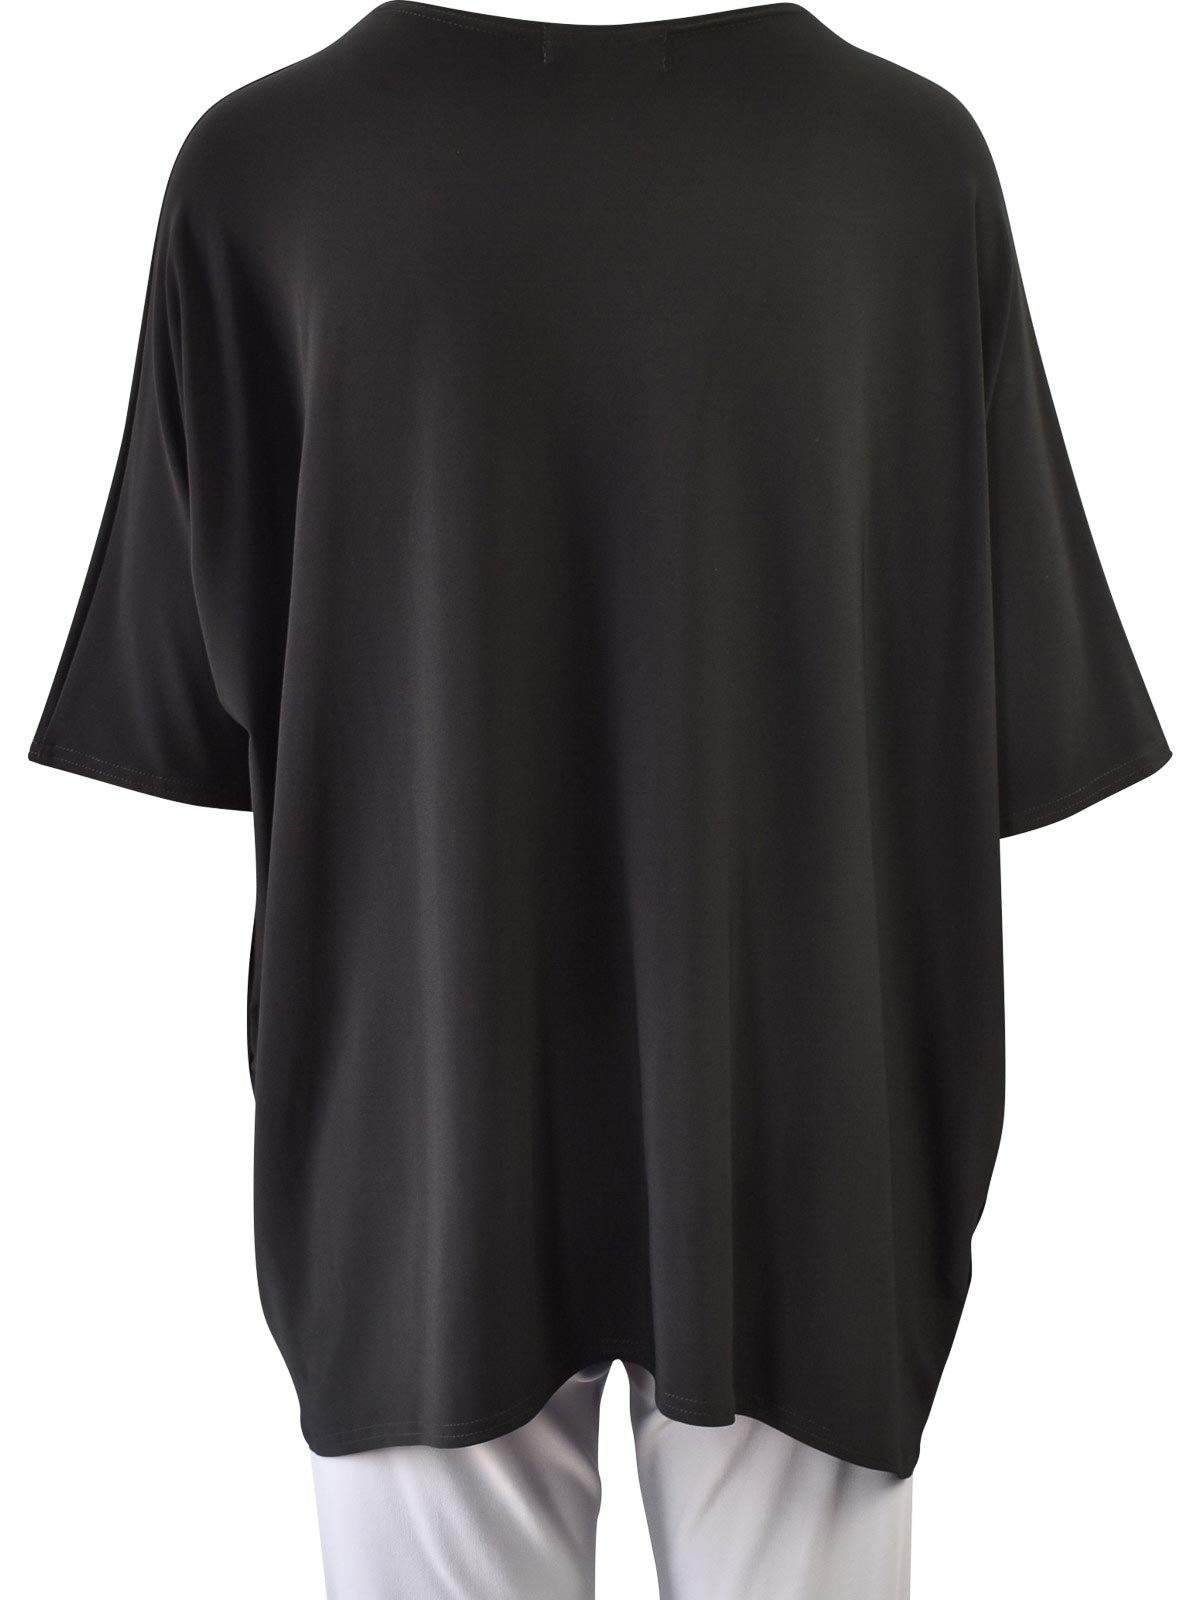 Sympli Lounge Top, Black